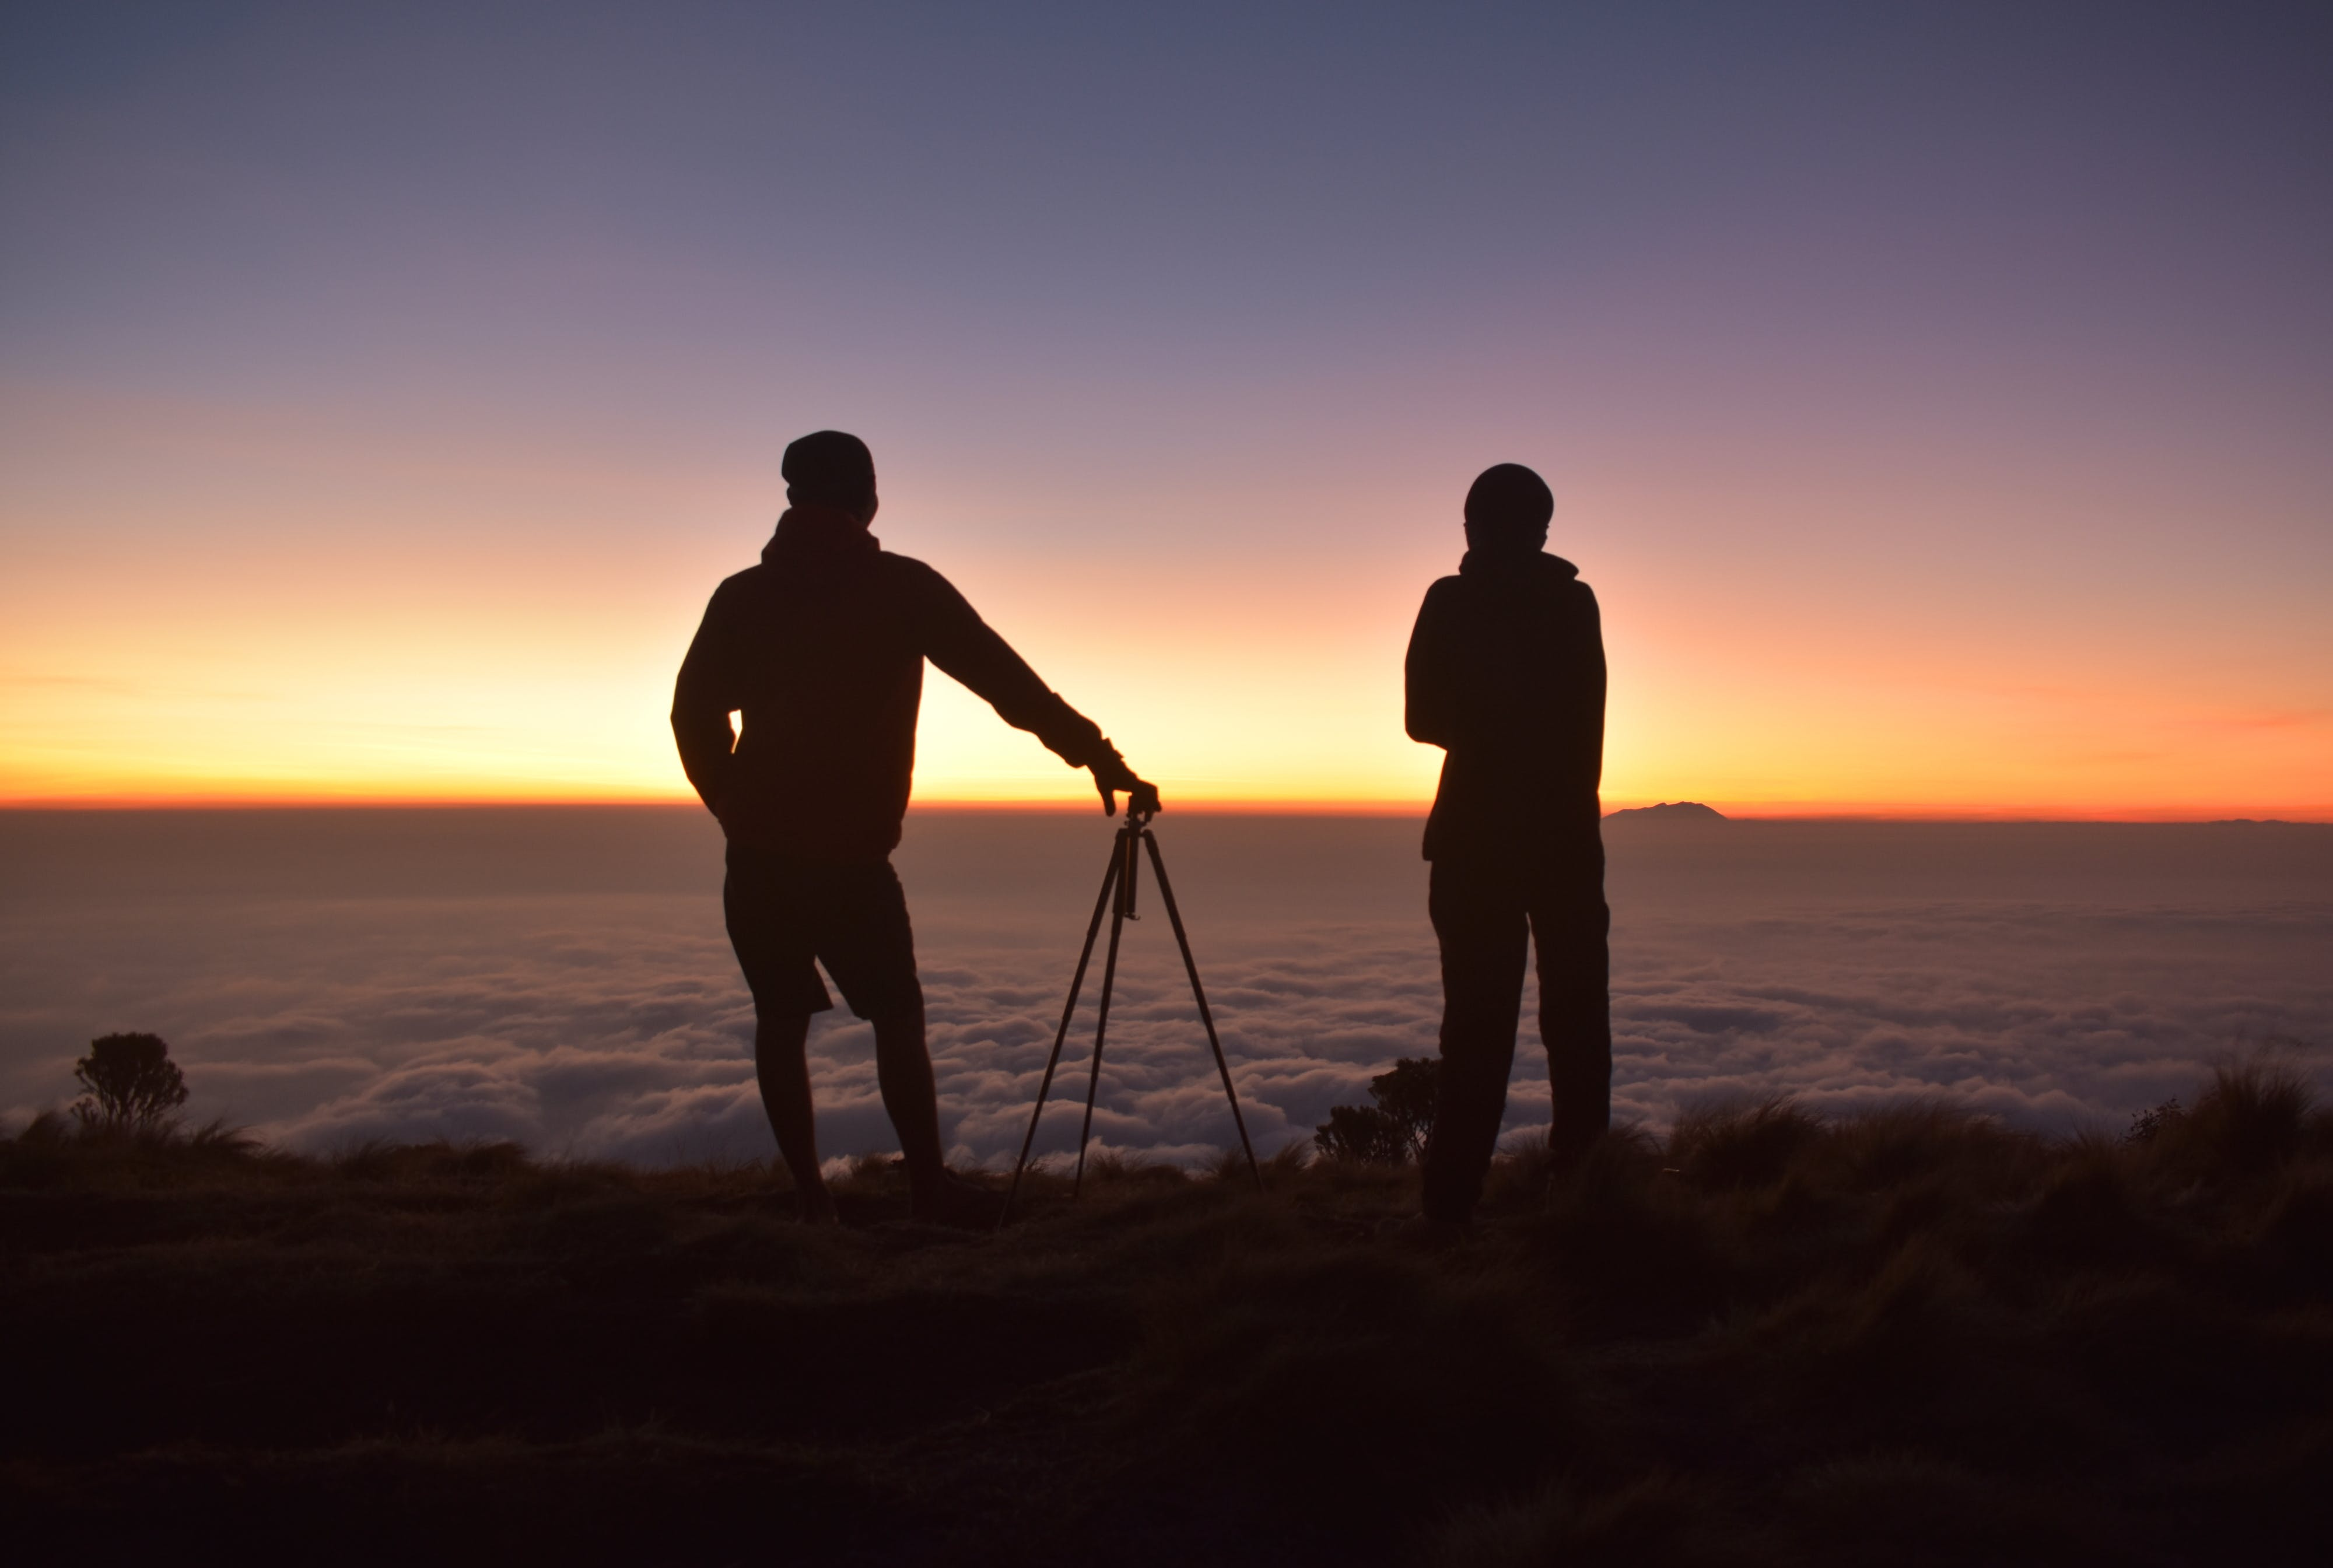 Silhouette of People on Mountain Tops Looking on Sea of Clouds